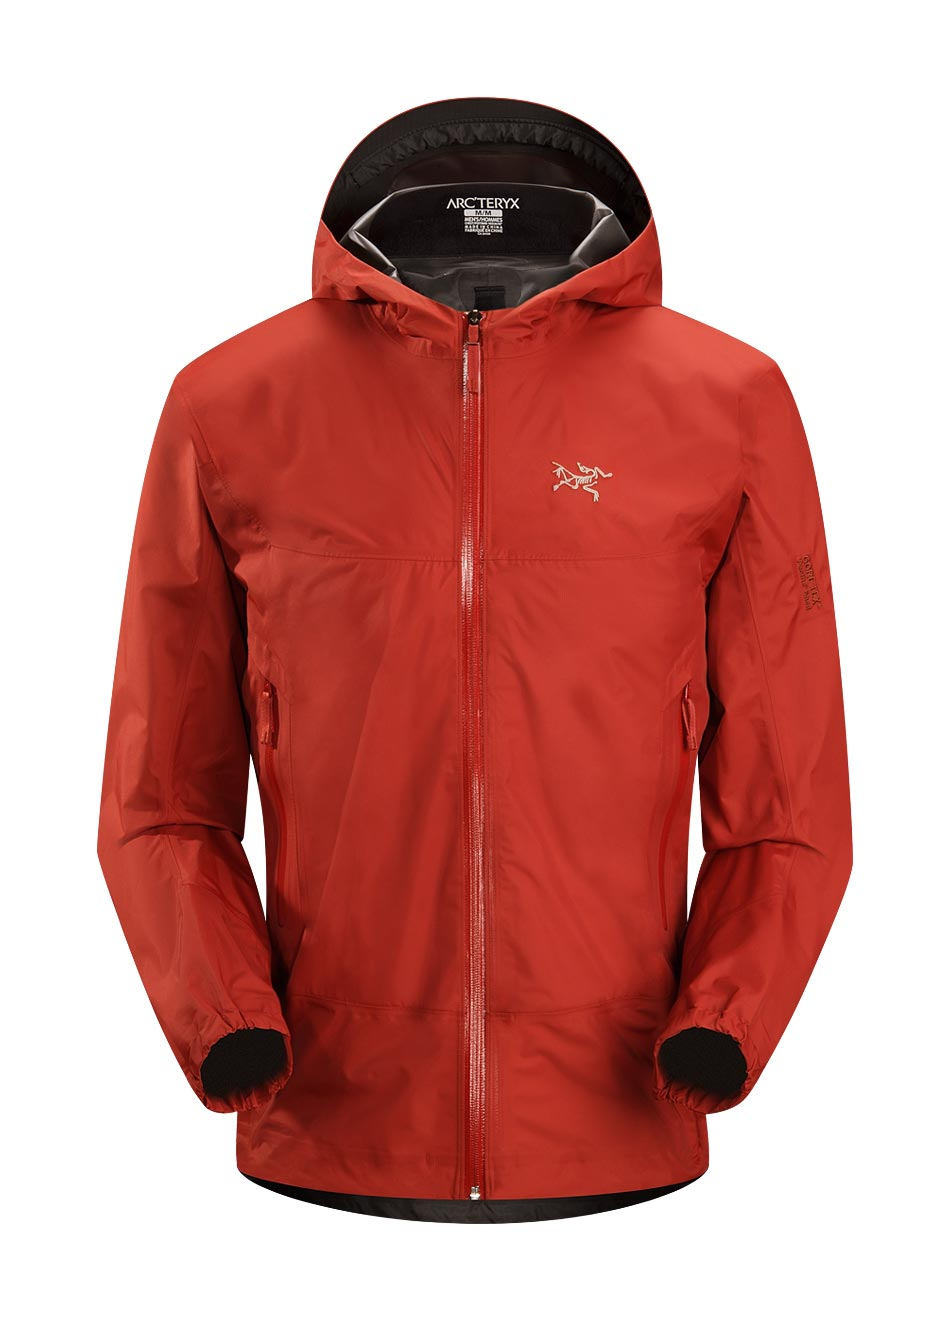 Arcteryx Jackets Men Rooibos Consular Jacket - New